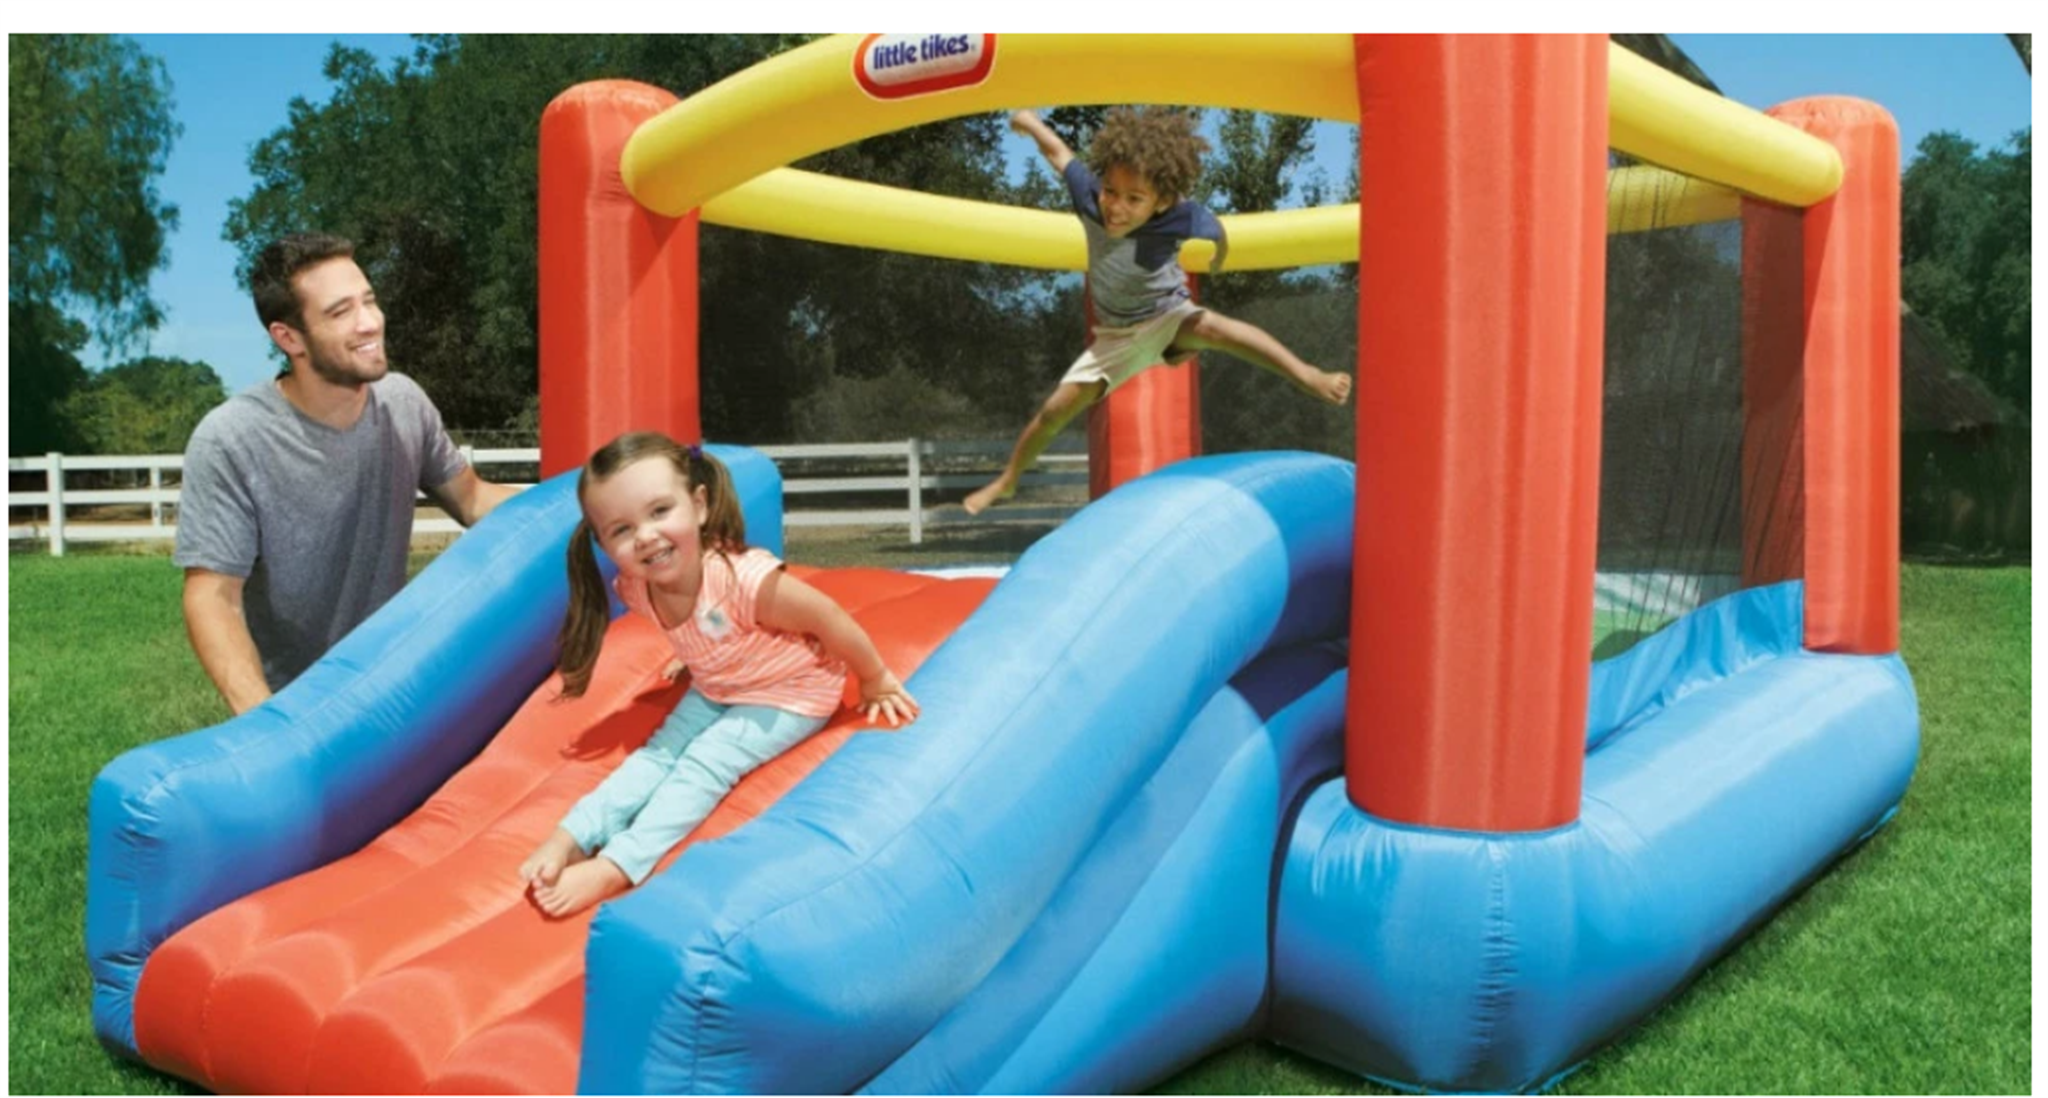 Lowes.com – Little Tikes Jr. Jump N Slide Only $49.98, Reg. $229.99 + Free Shipping! SELLING OUT FAST!